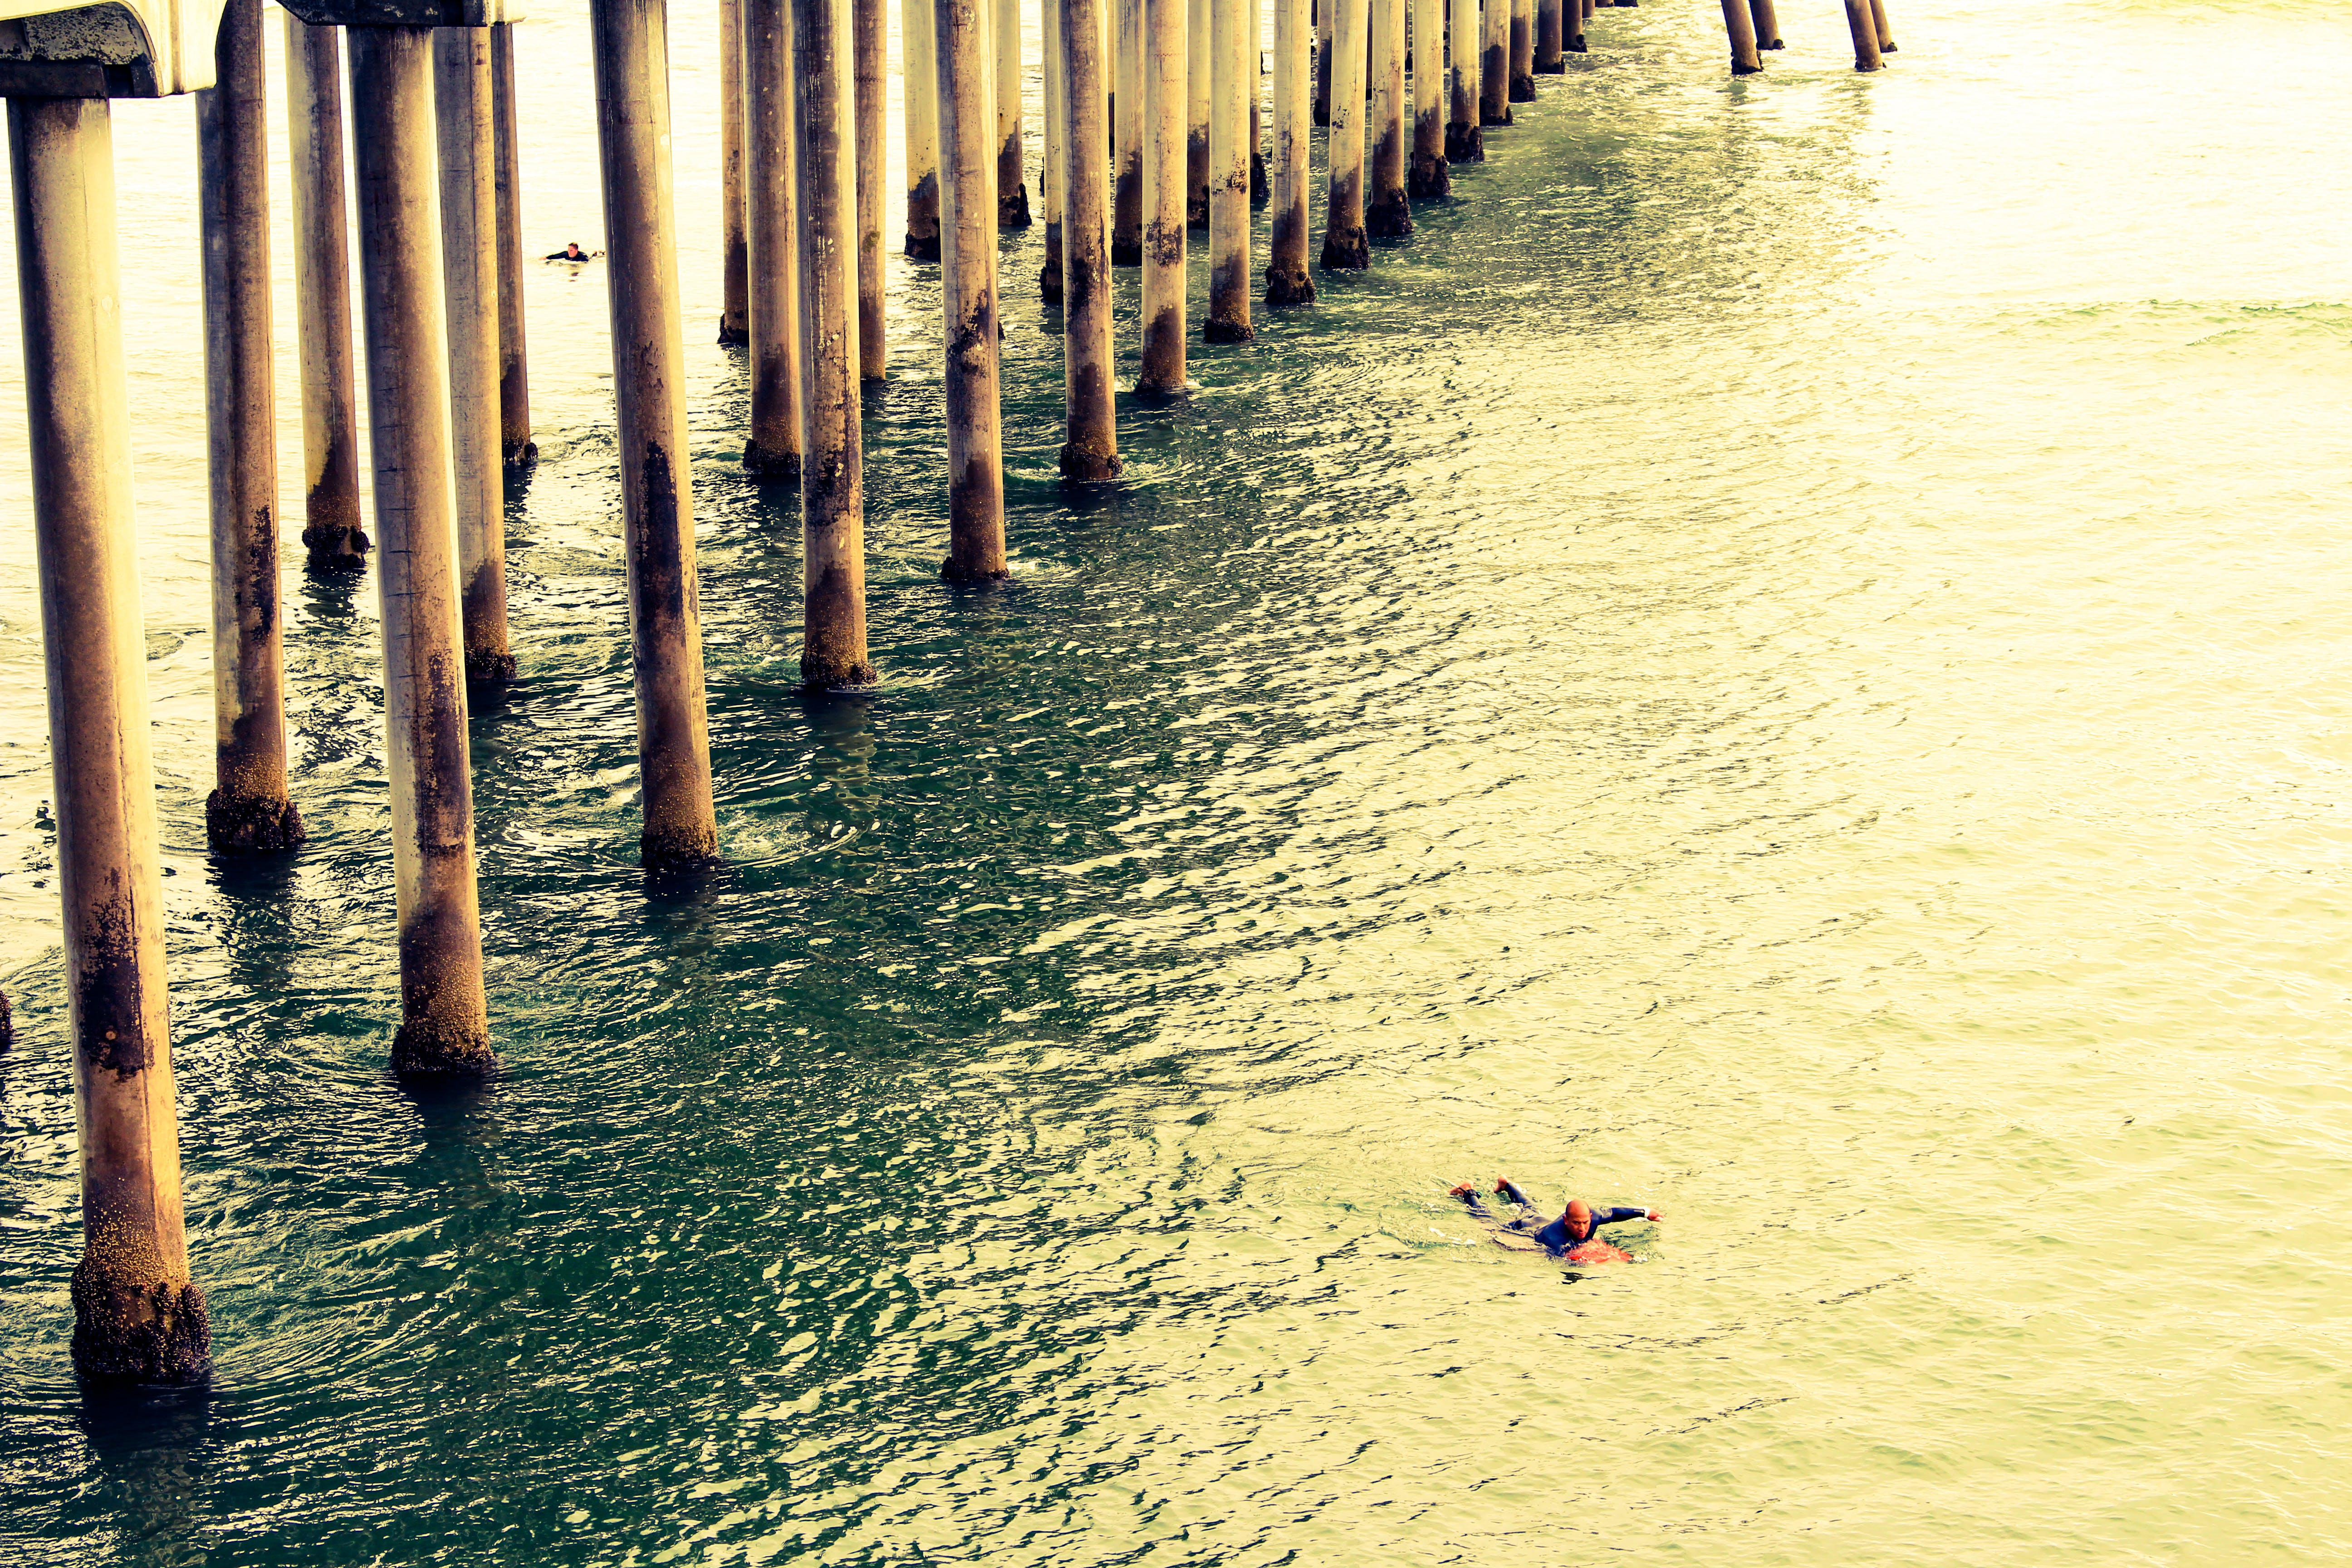 Person Swimming on Body of Water Near Wooden Columns